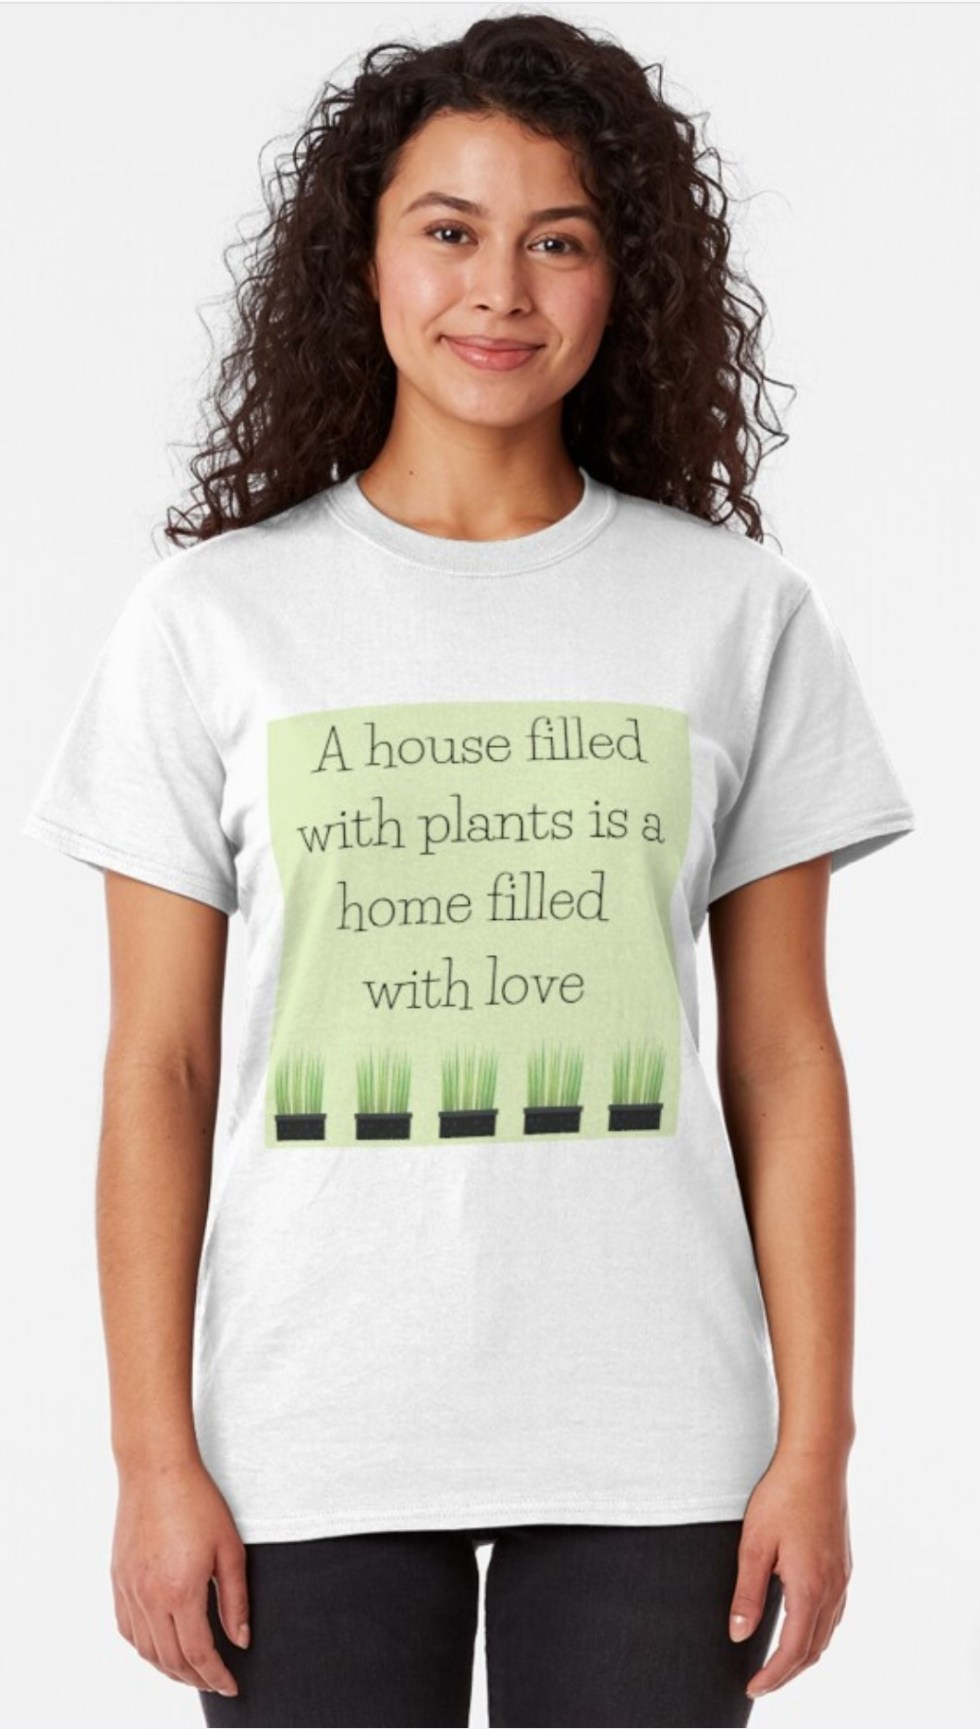 House Filled With Plants T-shirts for plant lovers